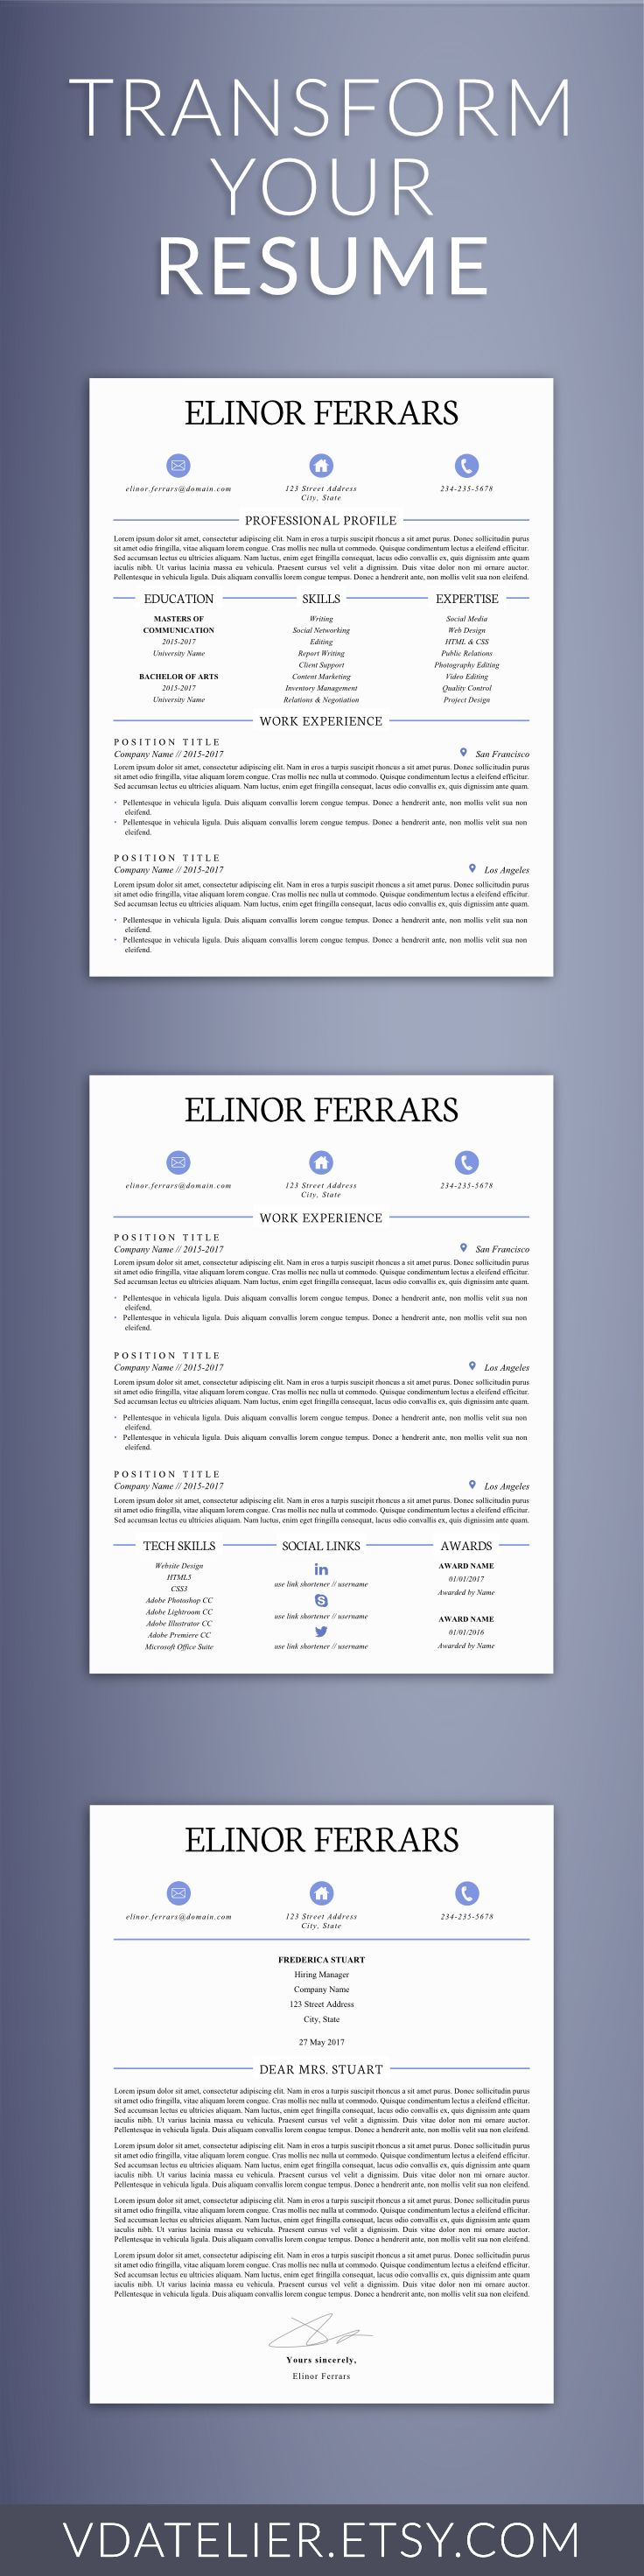 Elegant Resume Template for Word | Creative and Modern Resume | Curriculum Vita | CV Template | Cover Letter & References | US Letter, A4